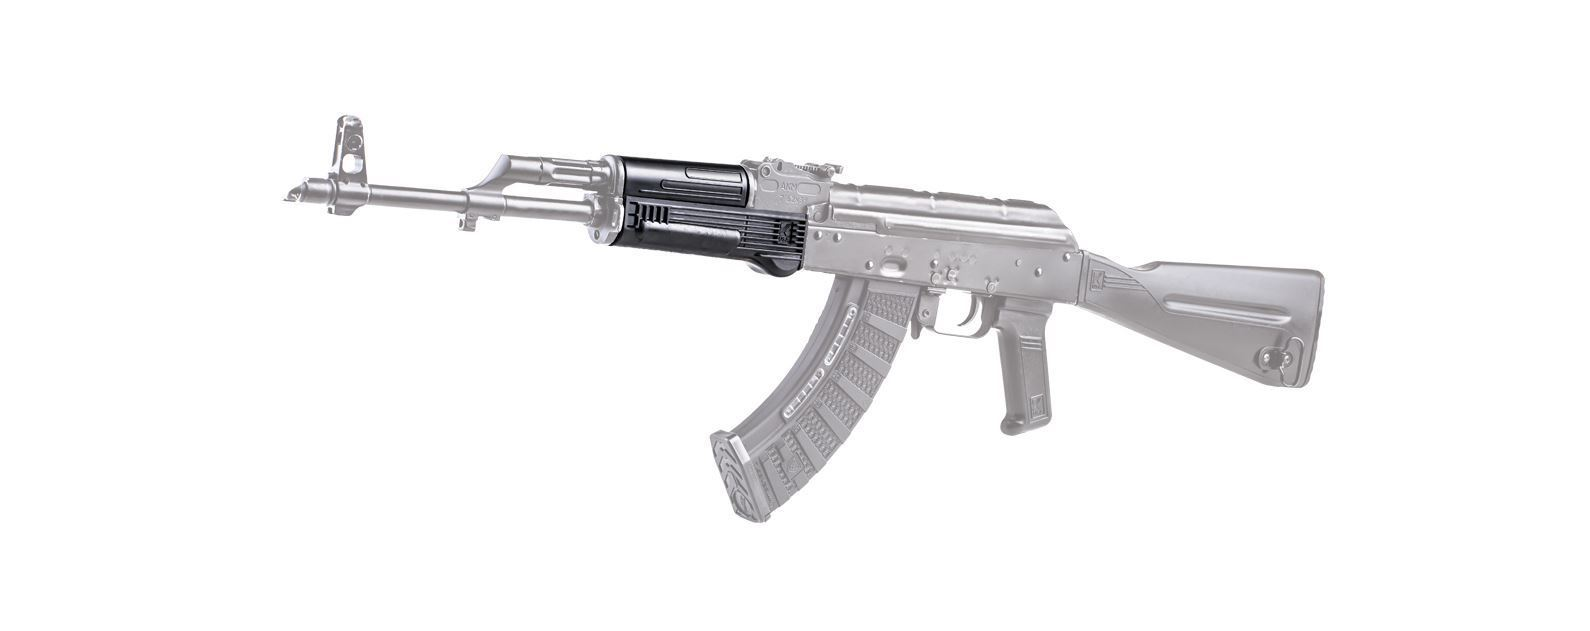 AK HANDGUARD FURNITURE